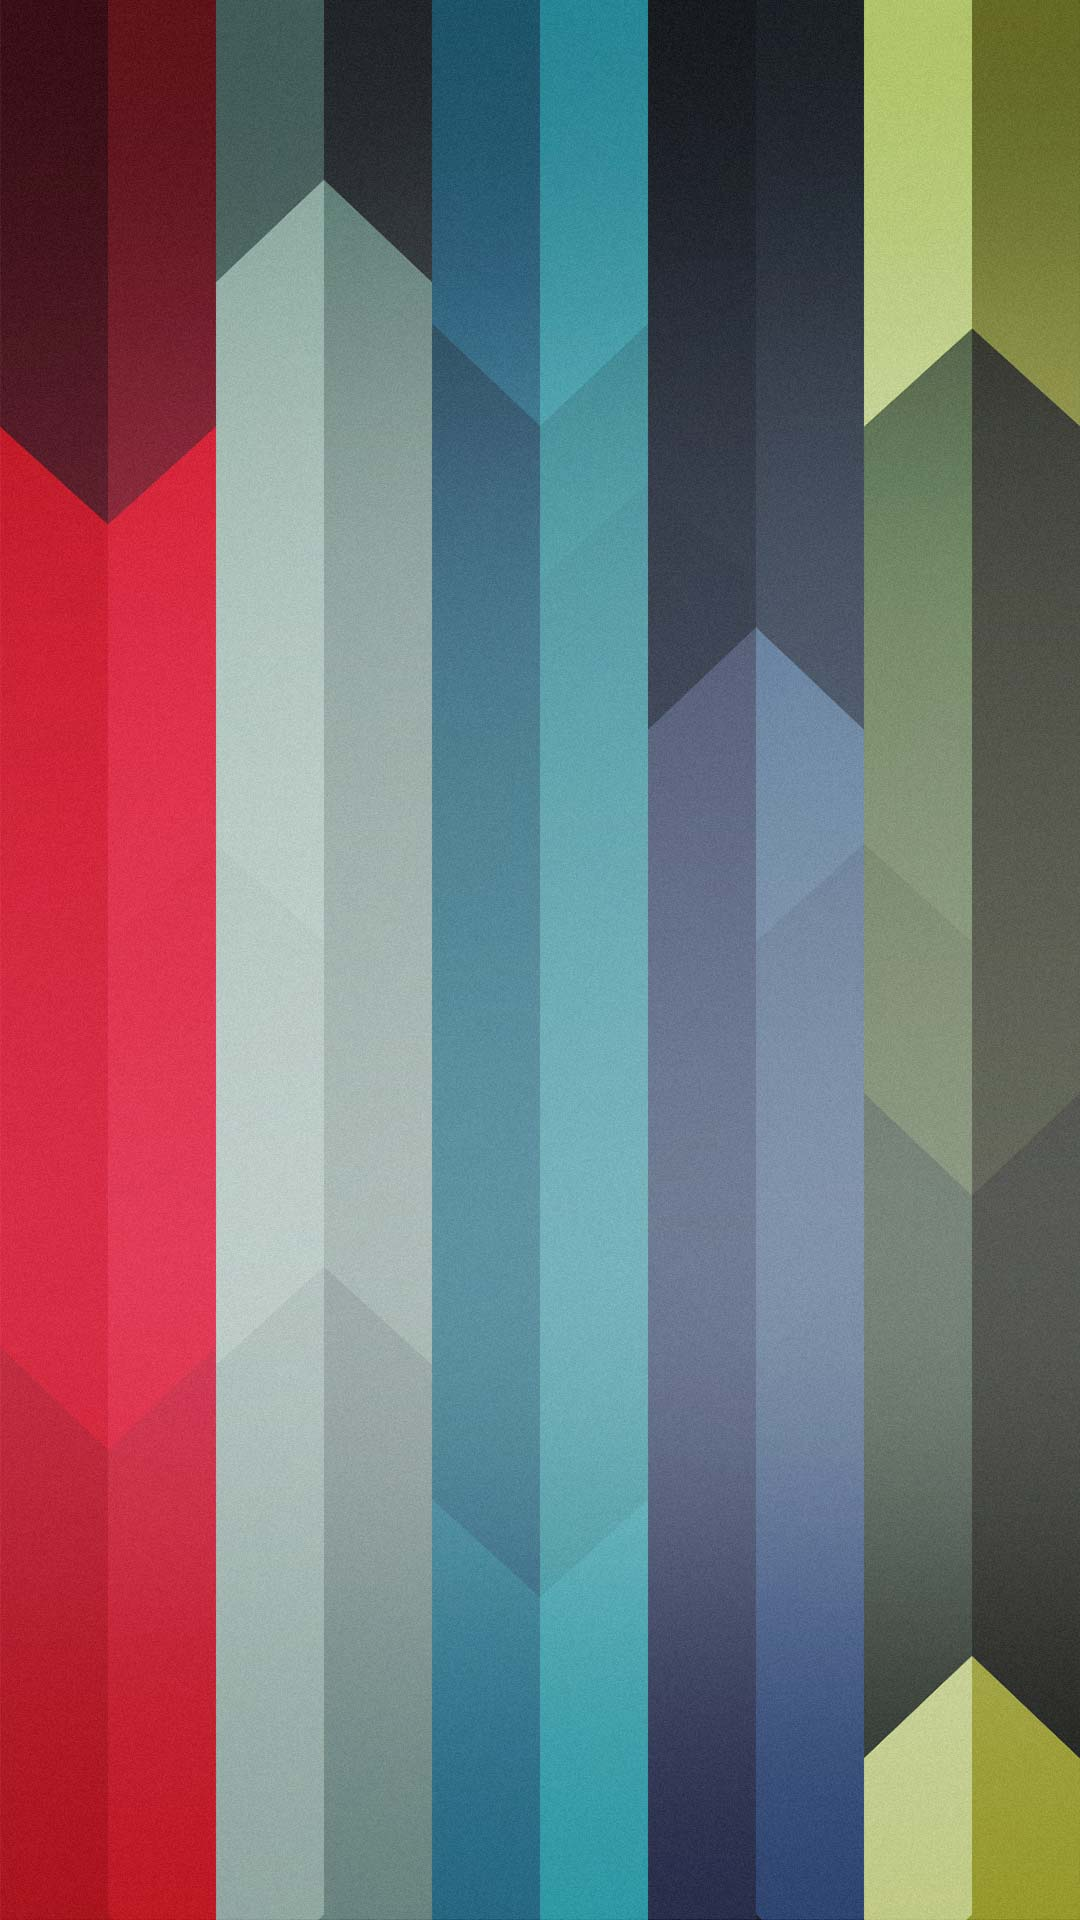 Stripes and arrows blue smartphone wallpapers getphotos for Abstract smartphone wallpaper